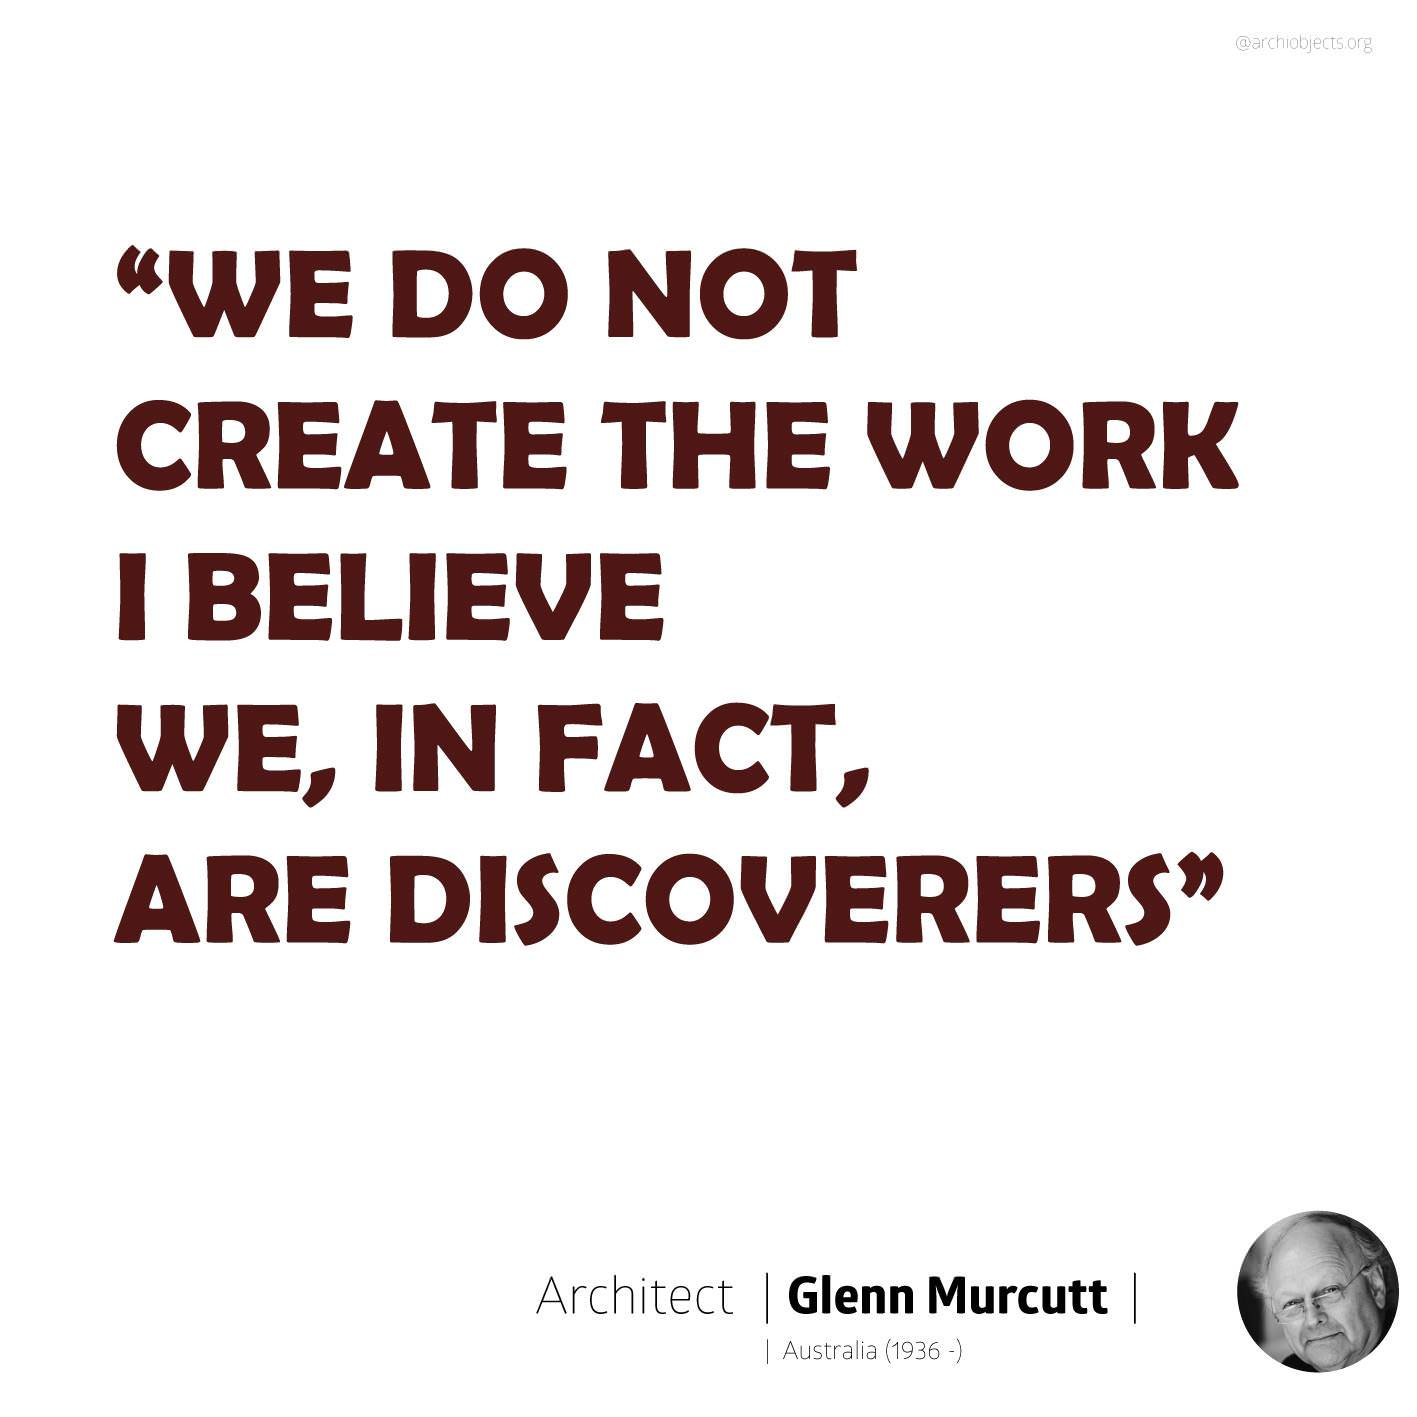 glenn murcutt Architectural Quotes - Worth spreading Architects' voice